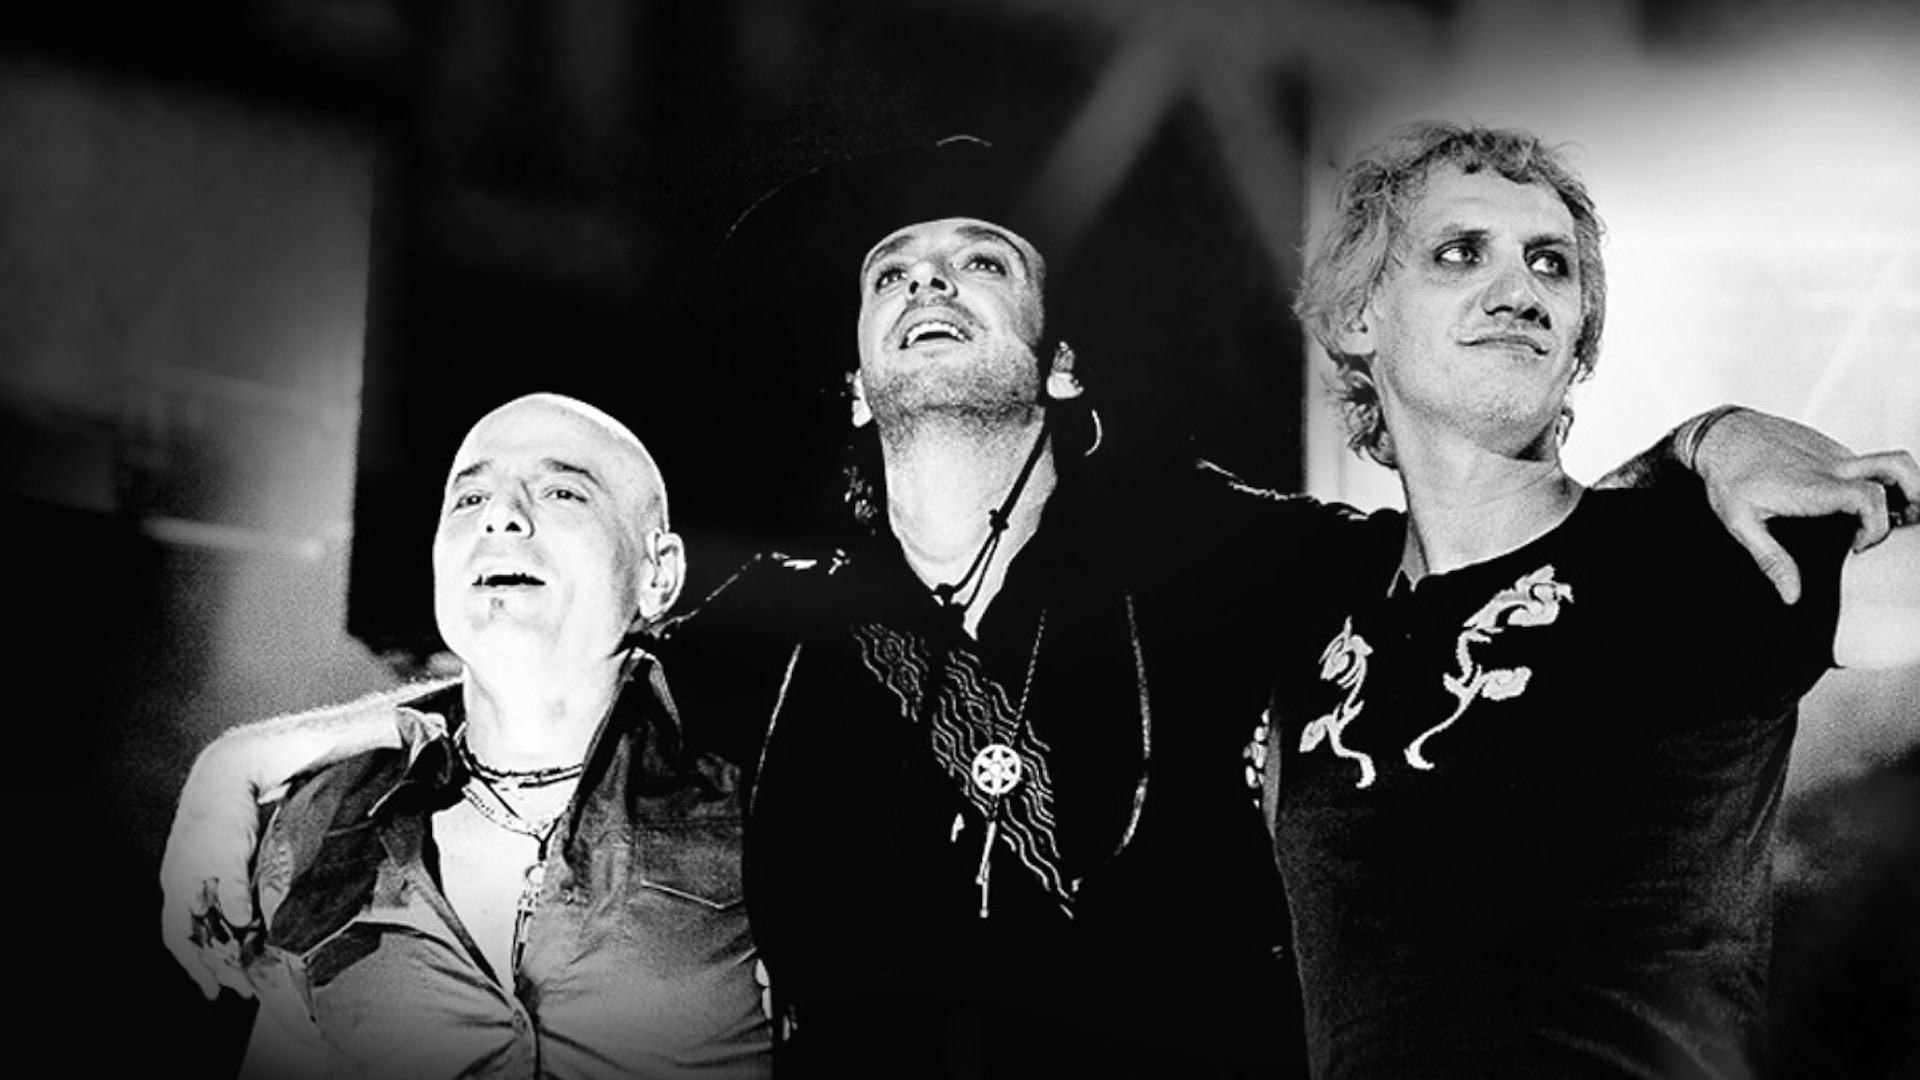 Download Soda Stereo Wallpaper Hd Backgrounds Download